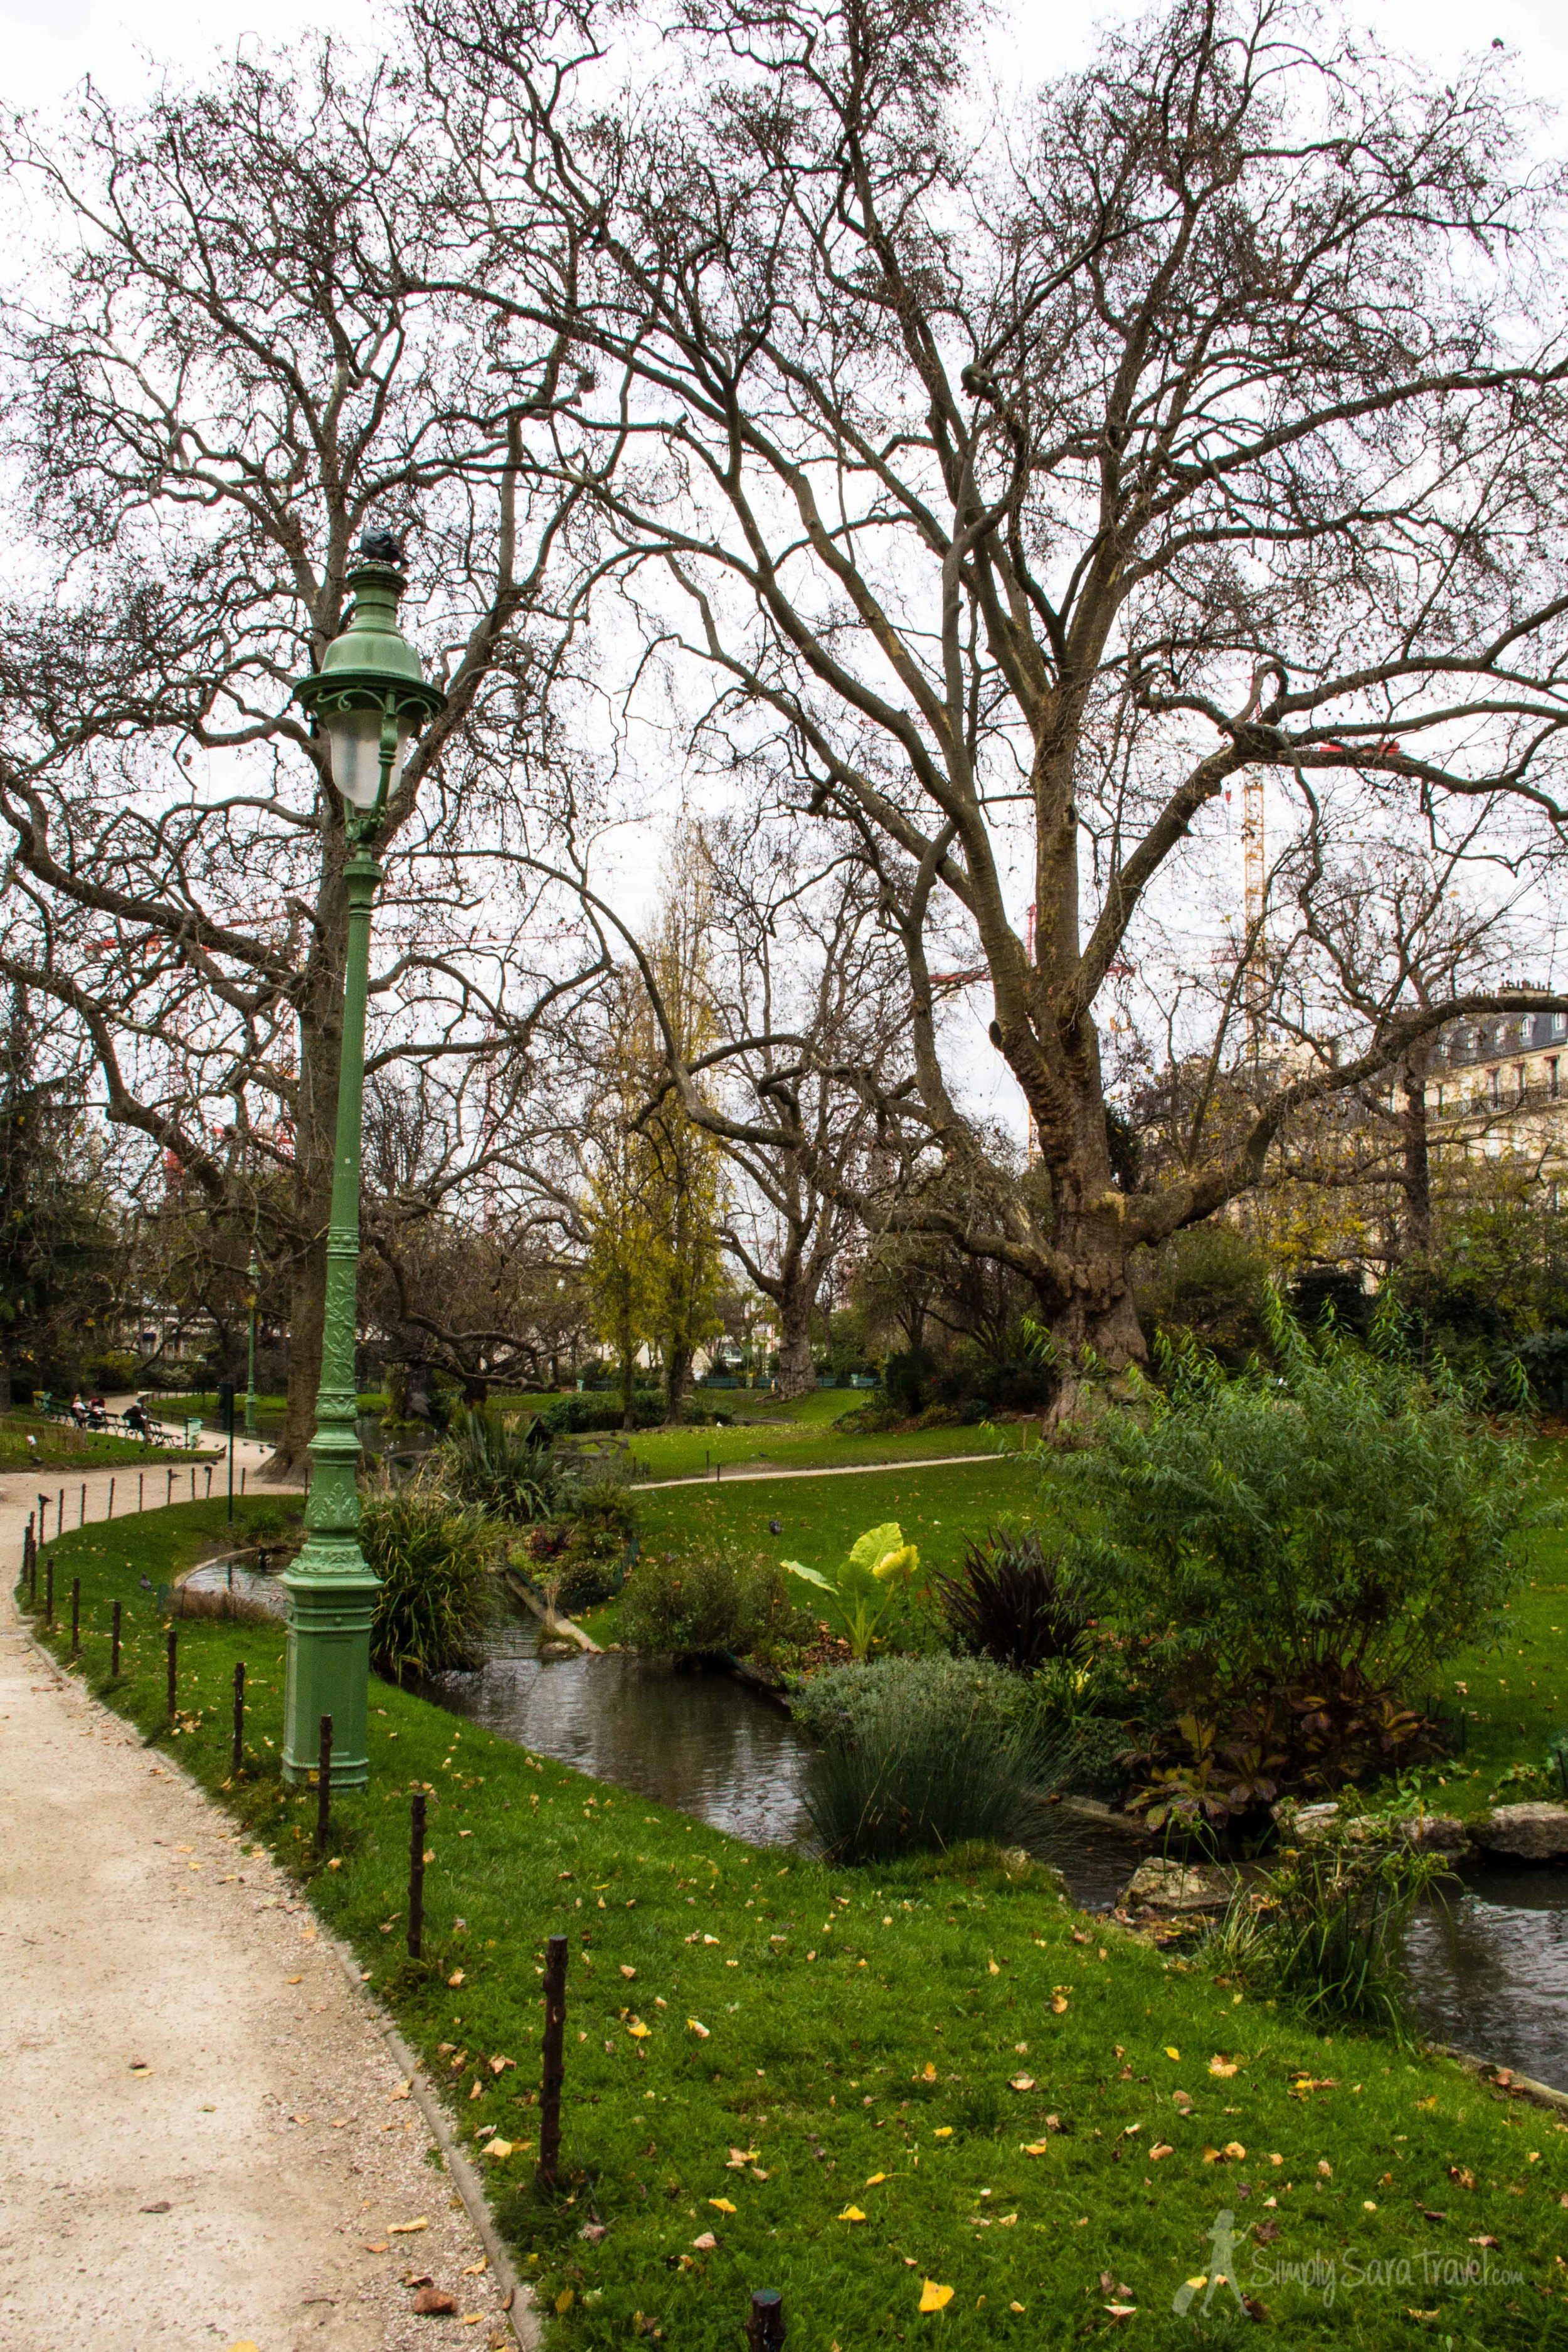 Square des Batignolles is steps away from train tracks leading to the bustling Gare Saint-Lazare, though you'd never realize it once within the park's grounds.